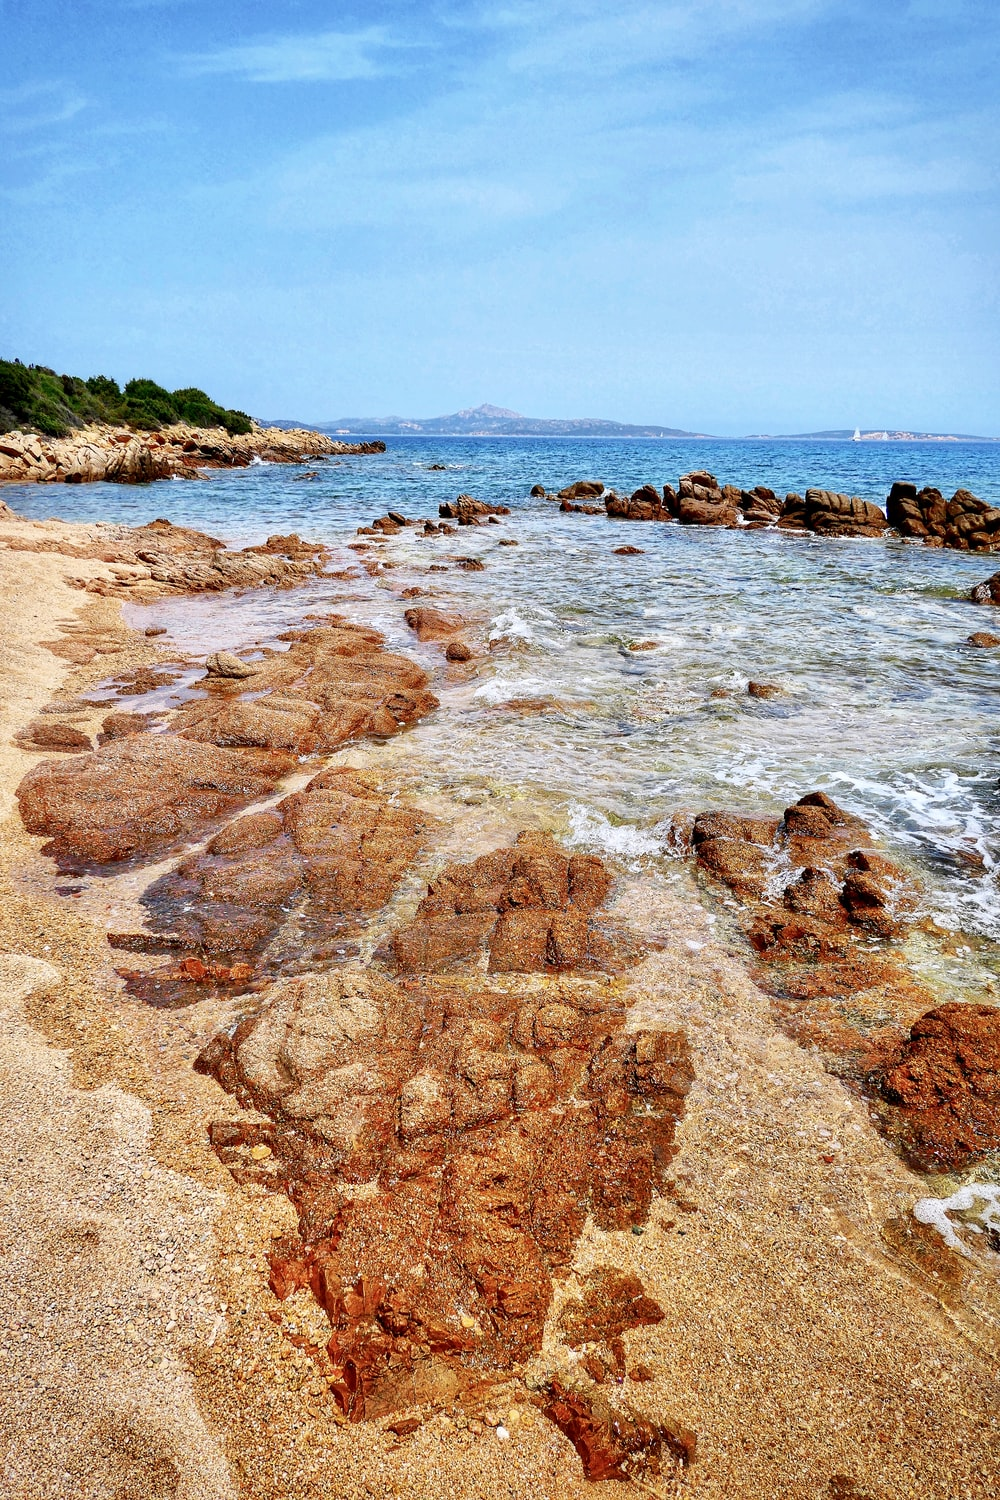 brown rocky shore near green mountain under blue sky during daytime